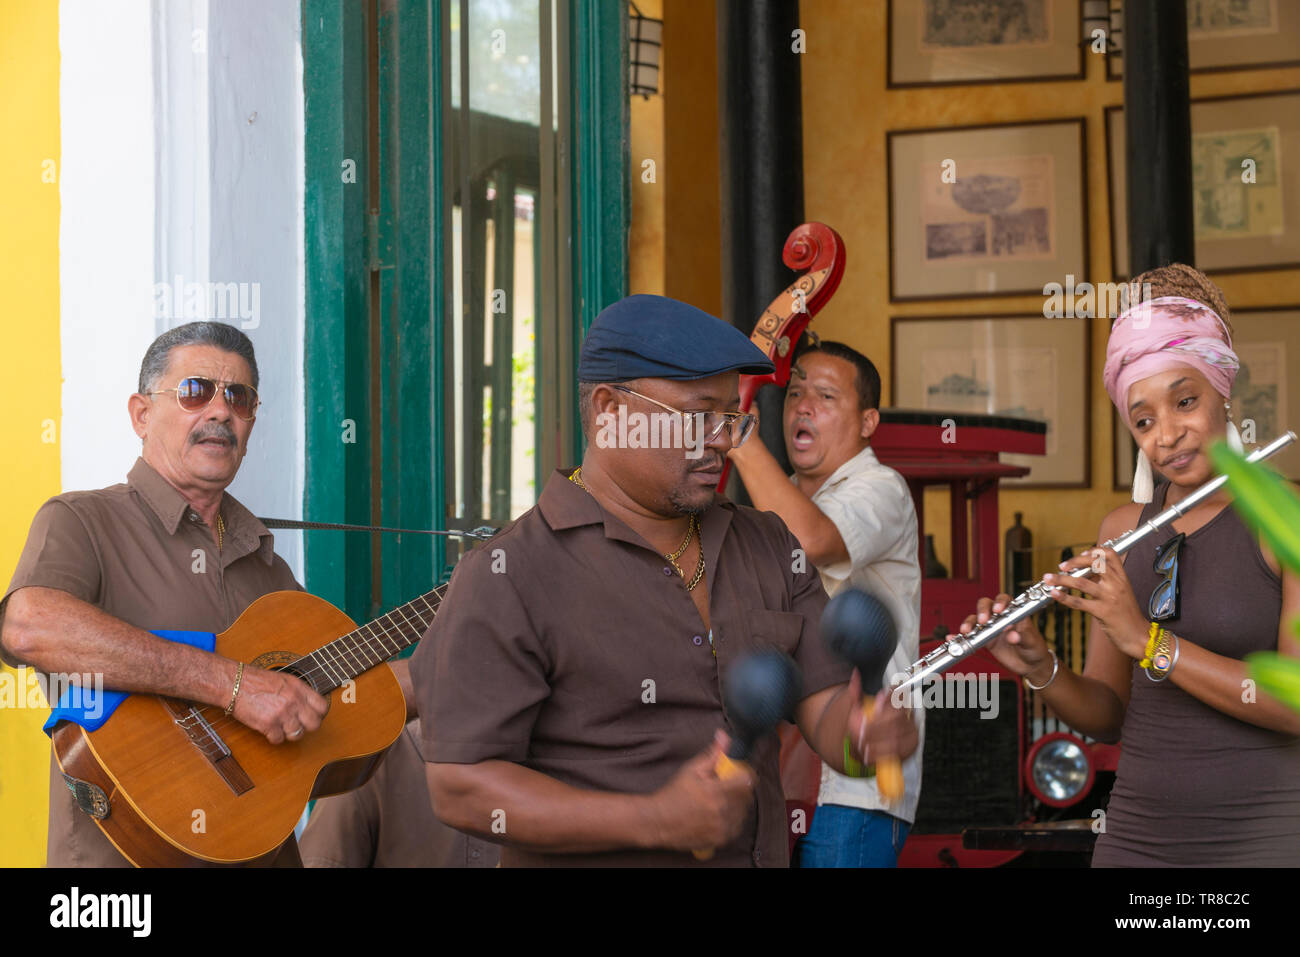 Muscians play during the day in a bar in the Old Town, Havana, Cuba, Caribbean - Stock Image